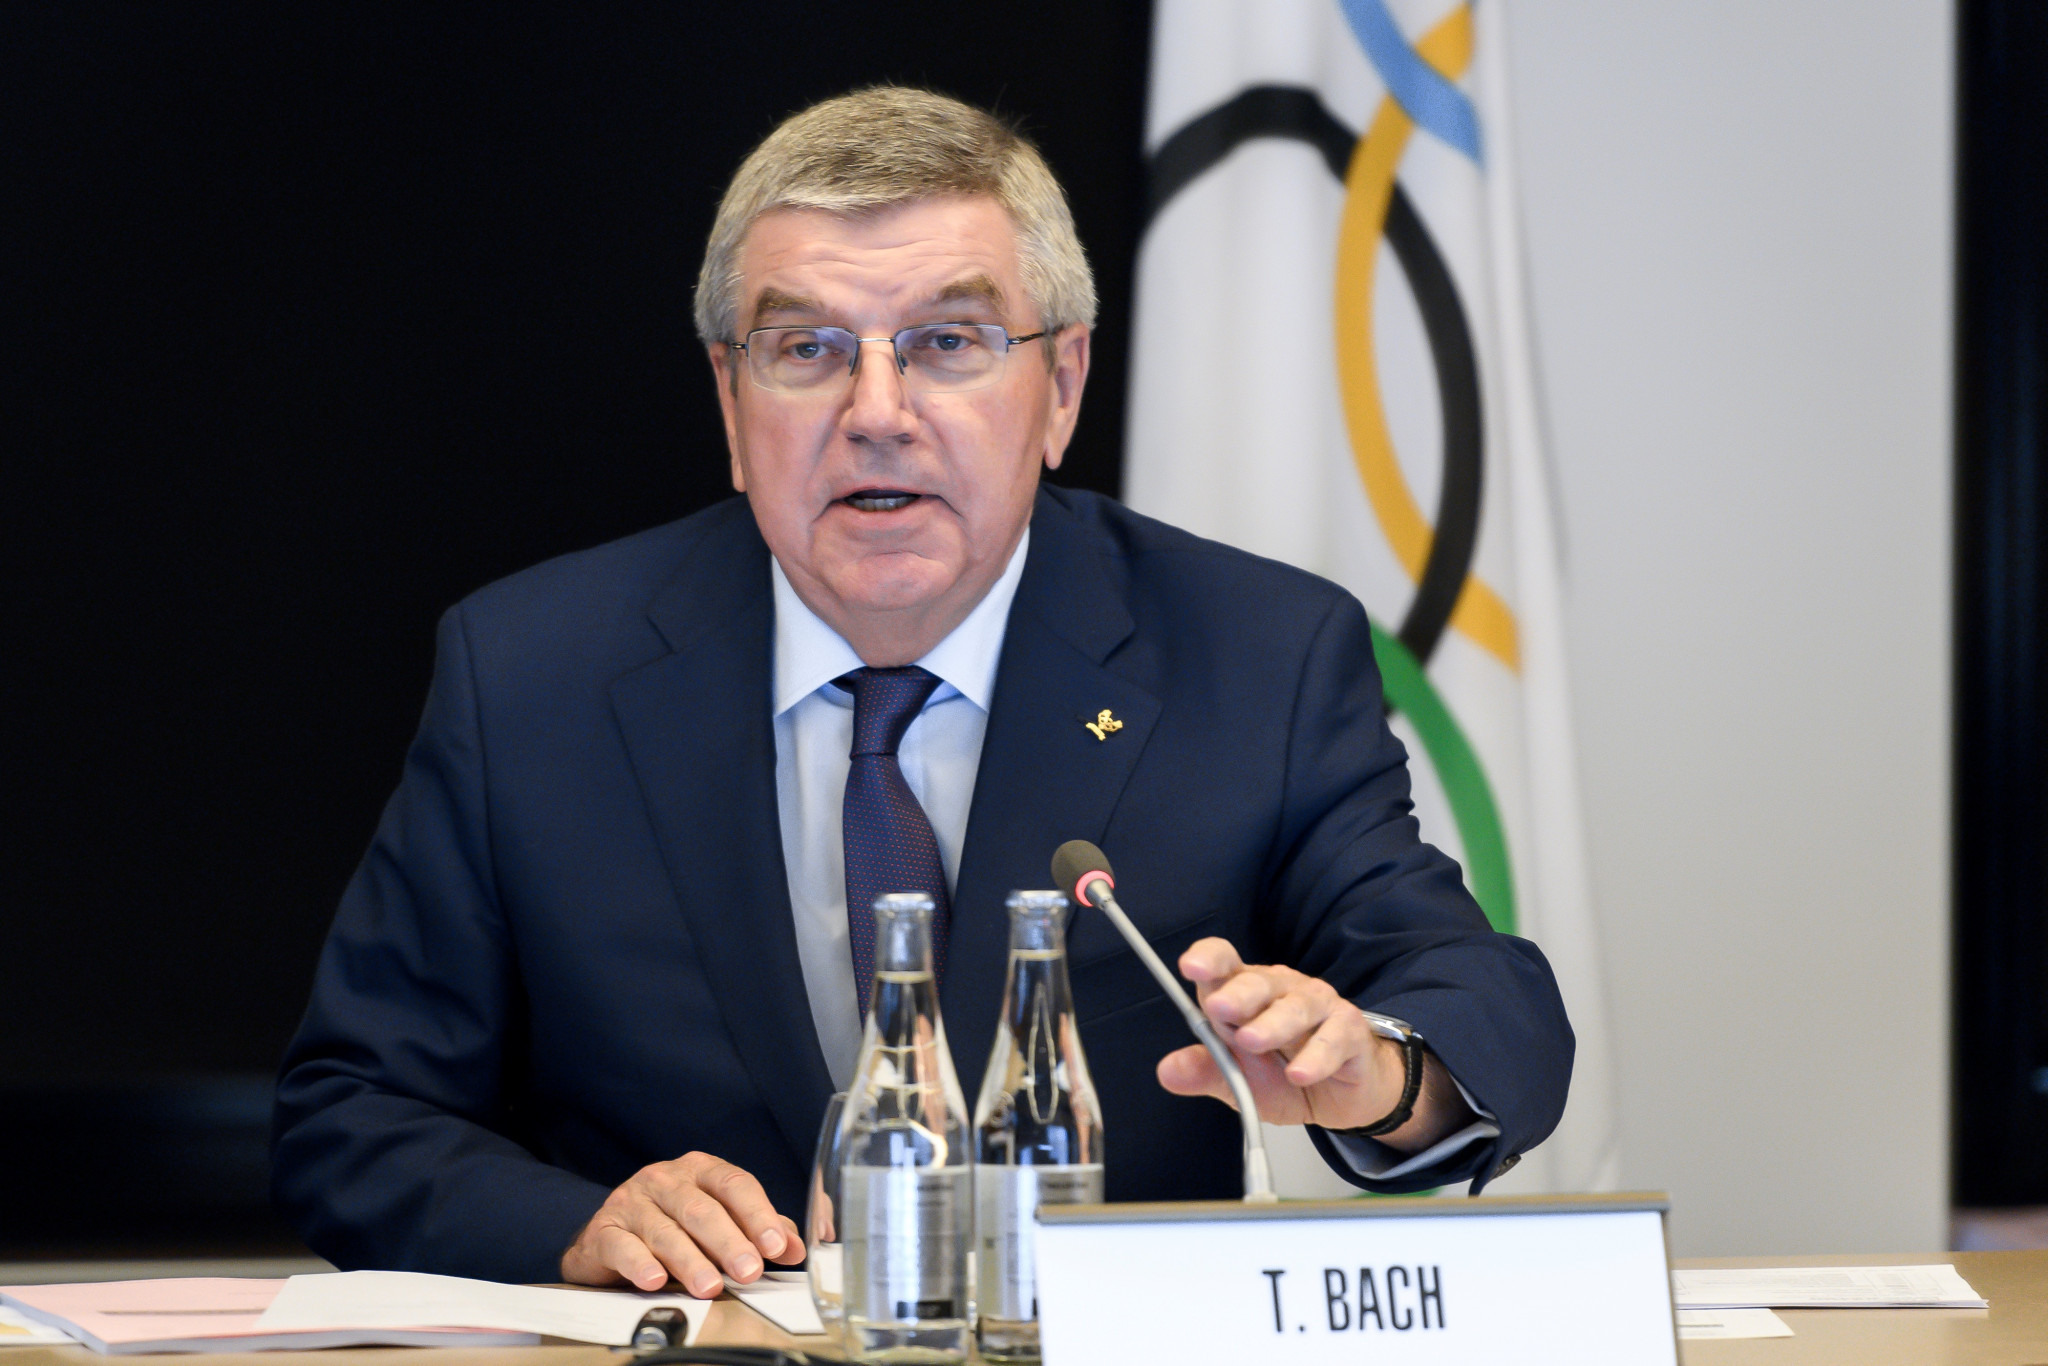 Olympic bids to be widened beyond one host city and flexible timeline installed under proposals from IOC working group